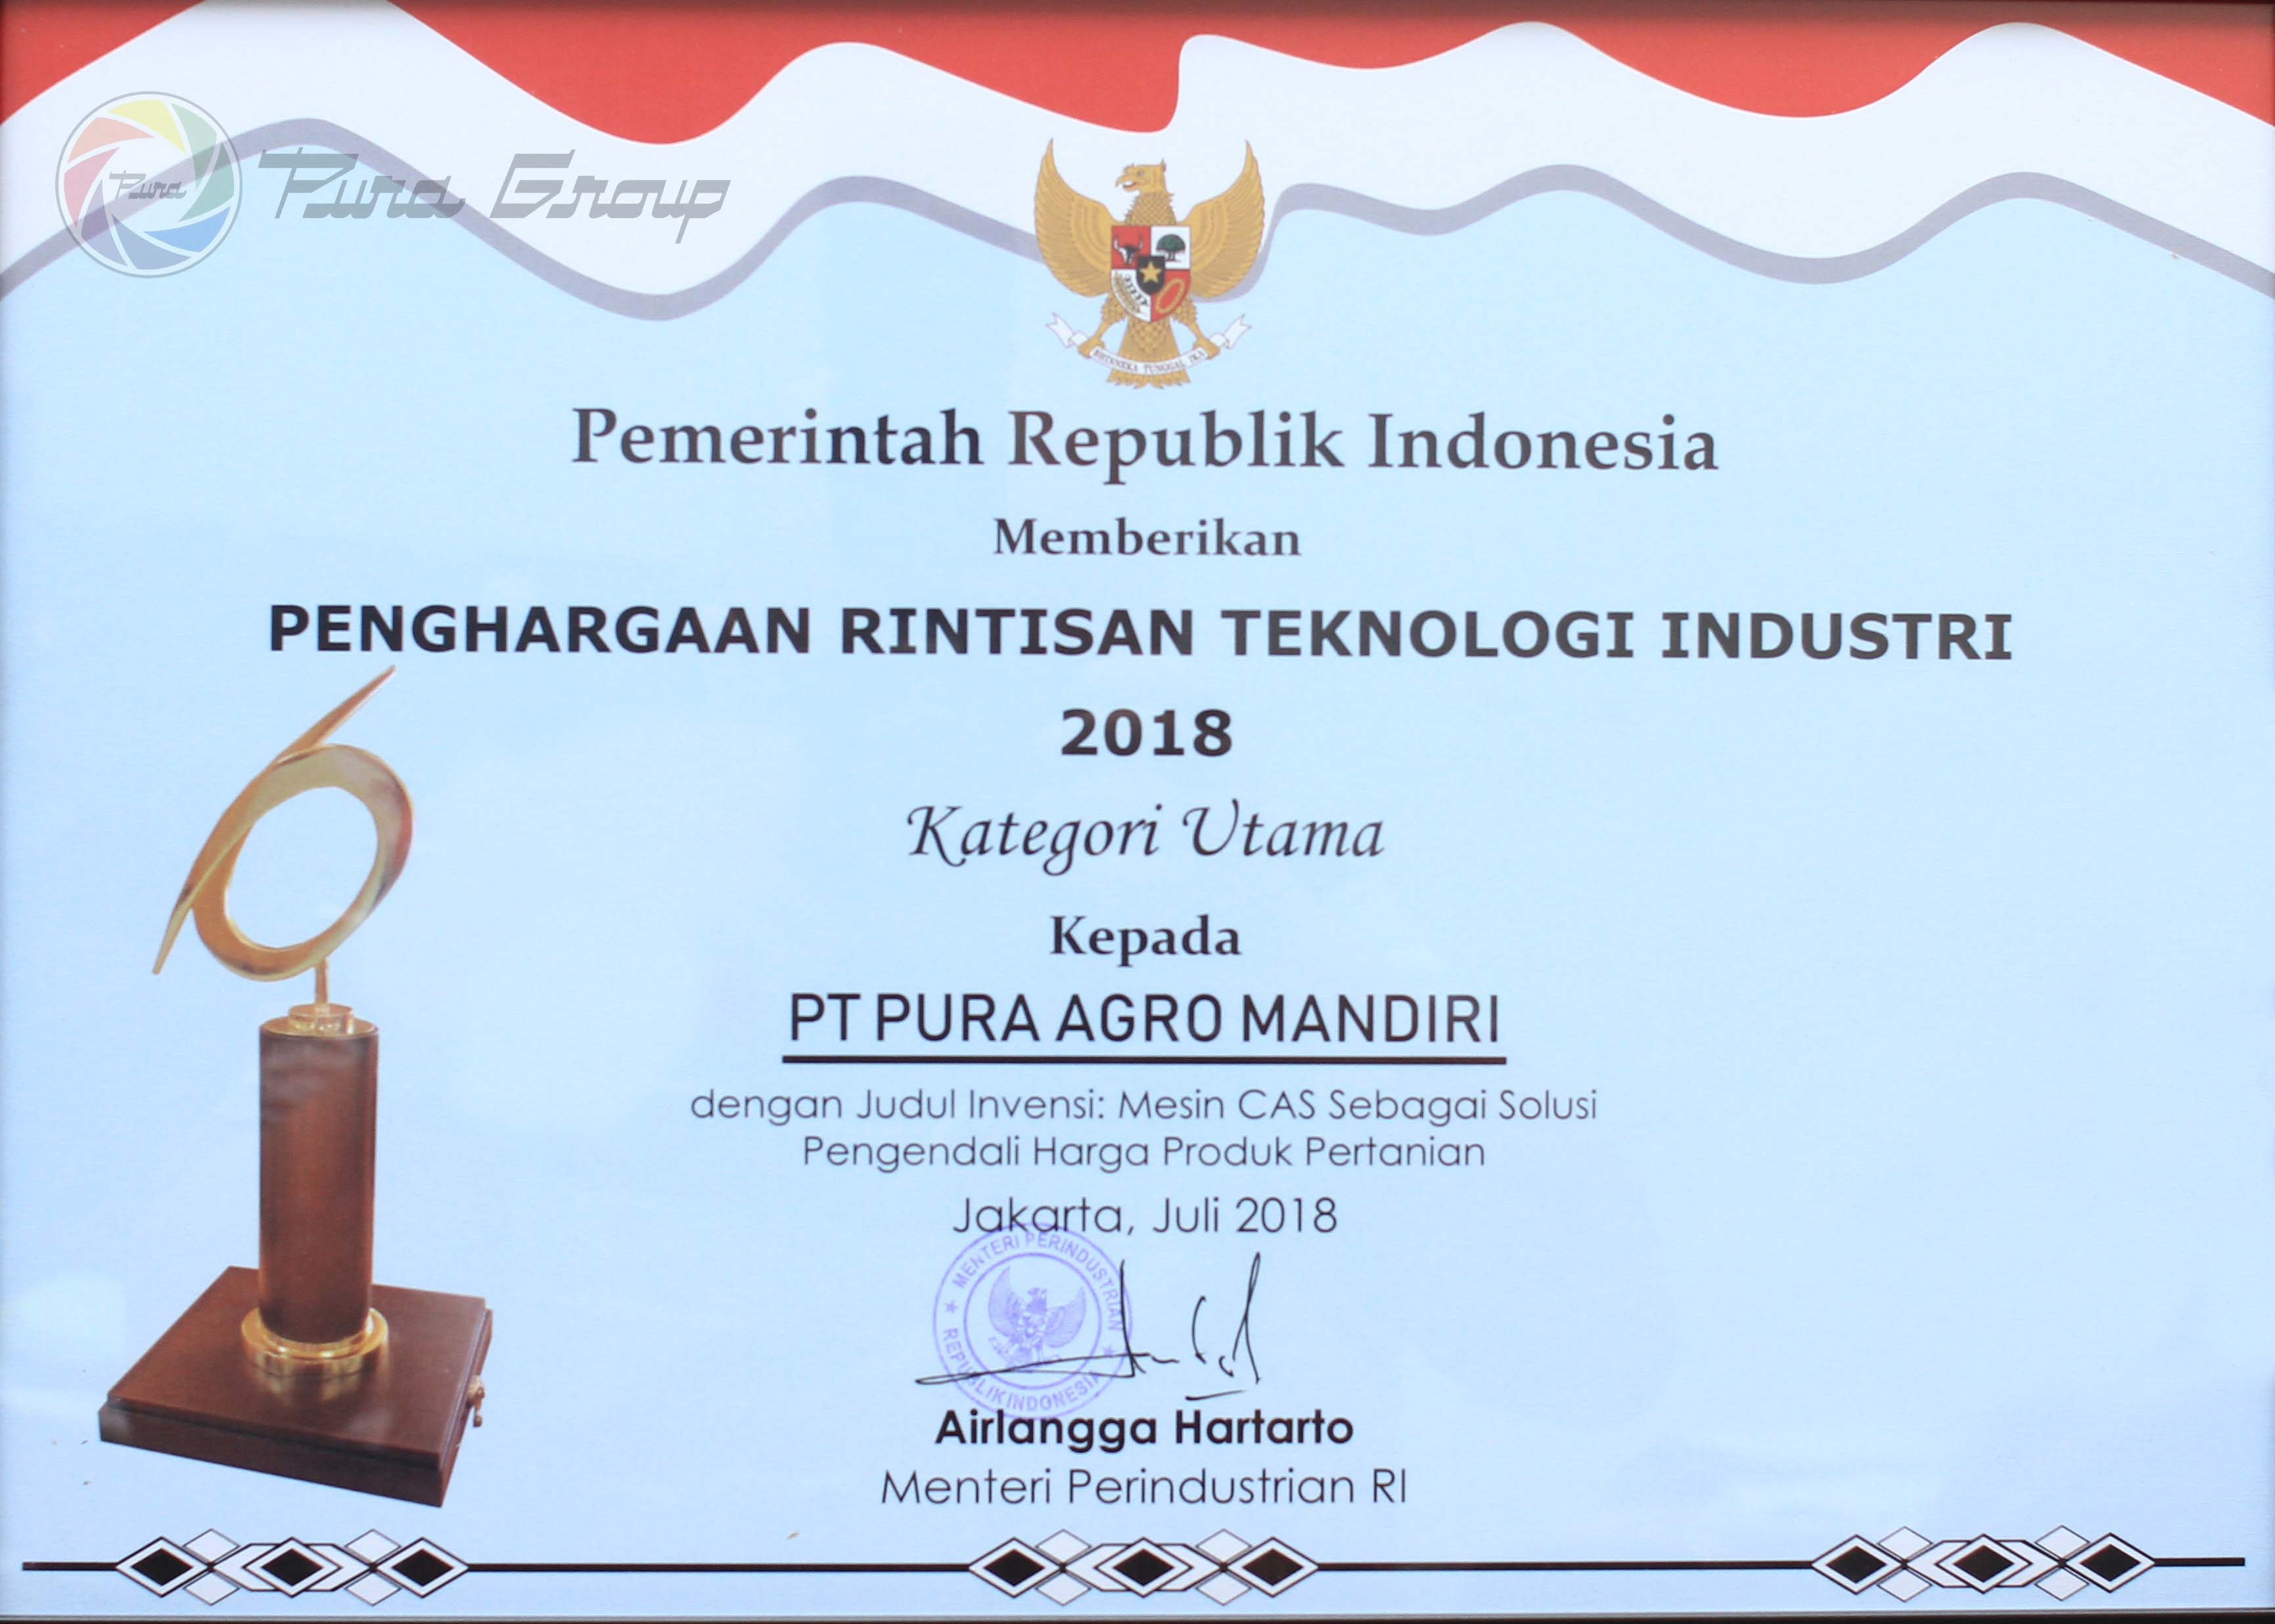 Industrial Technology Pioneer Award 2018